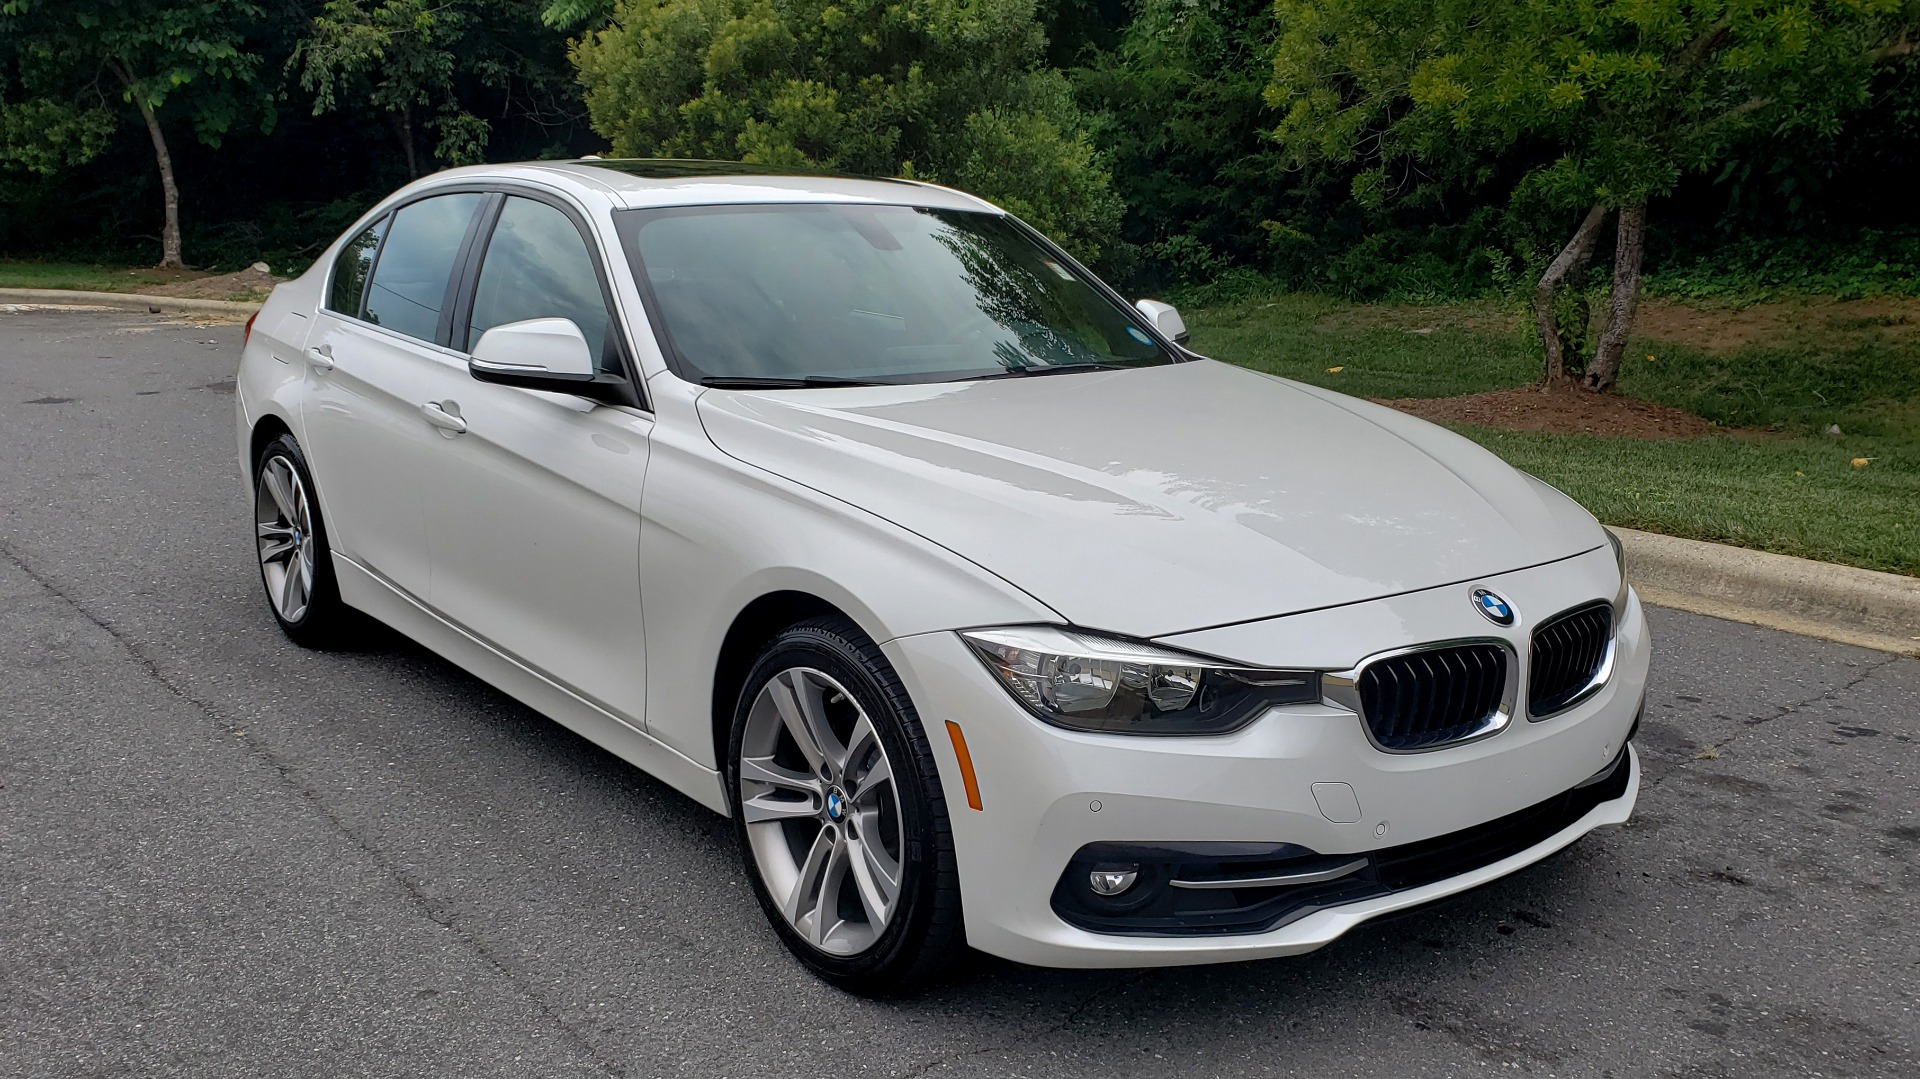 Used 2017 BMW 3 SERIES 330I SPORT / DRIVER ASST / SUNROOF / REARVIEW for sale $21,295 at Formula Imports in Charlotte NC 28227 4